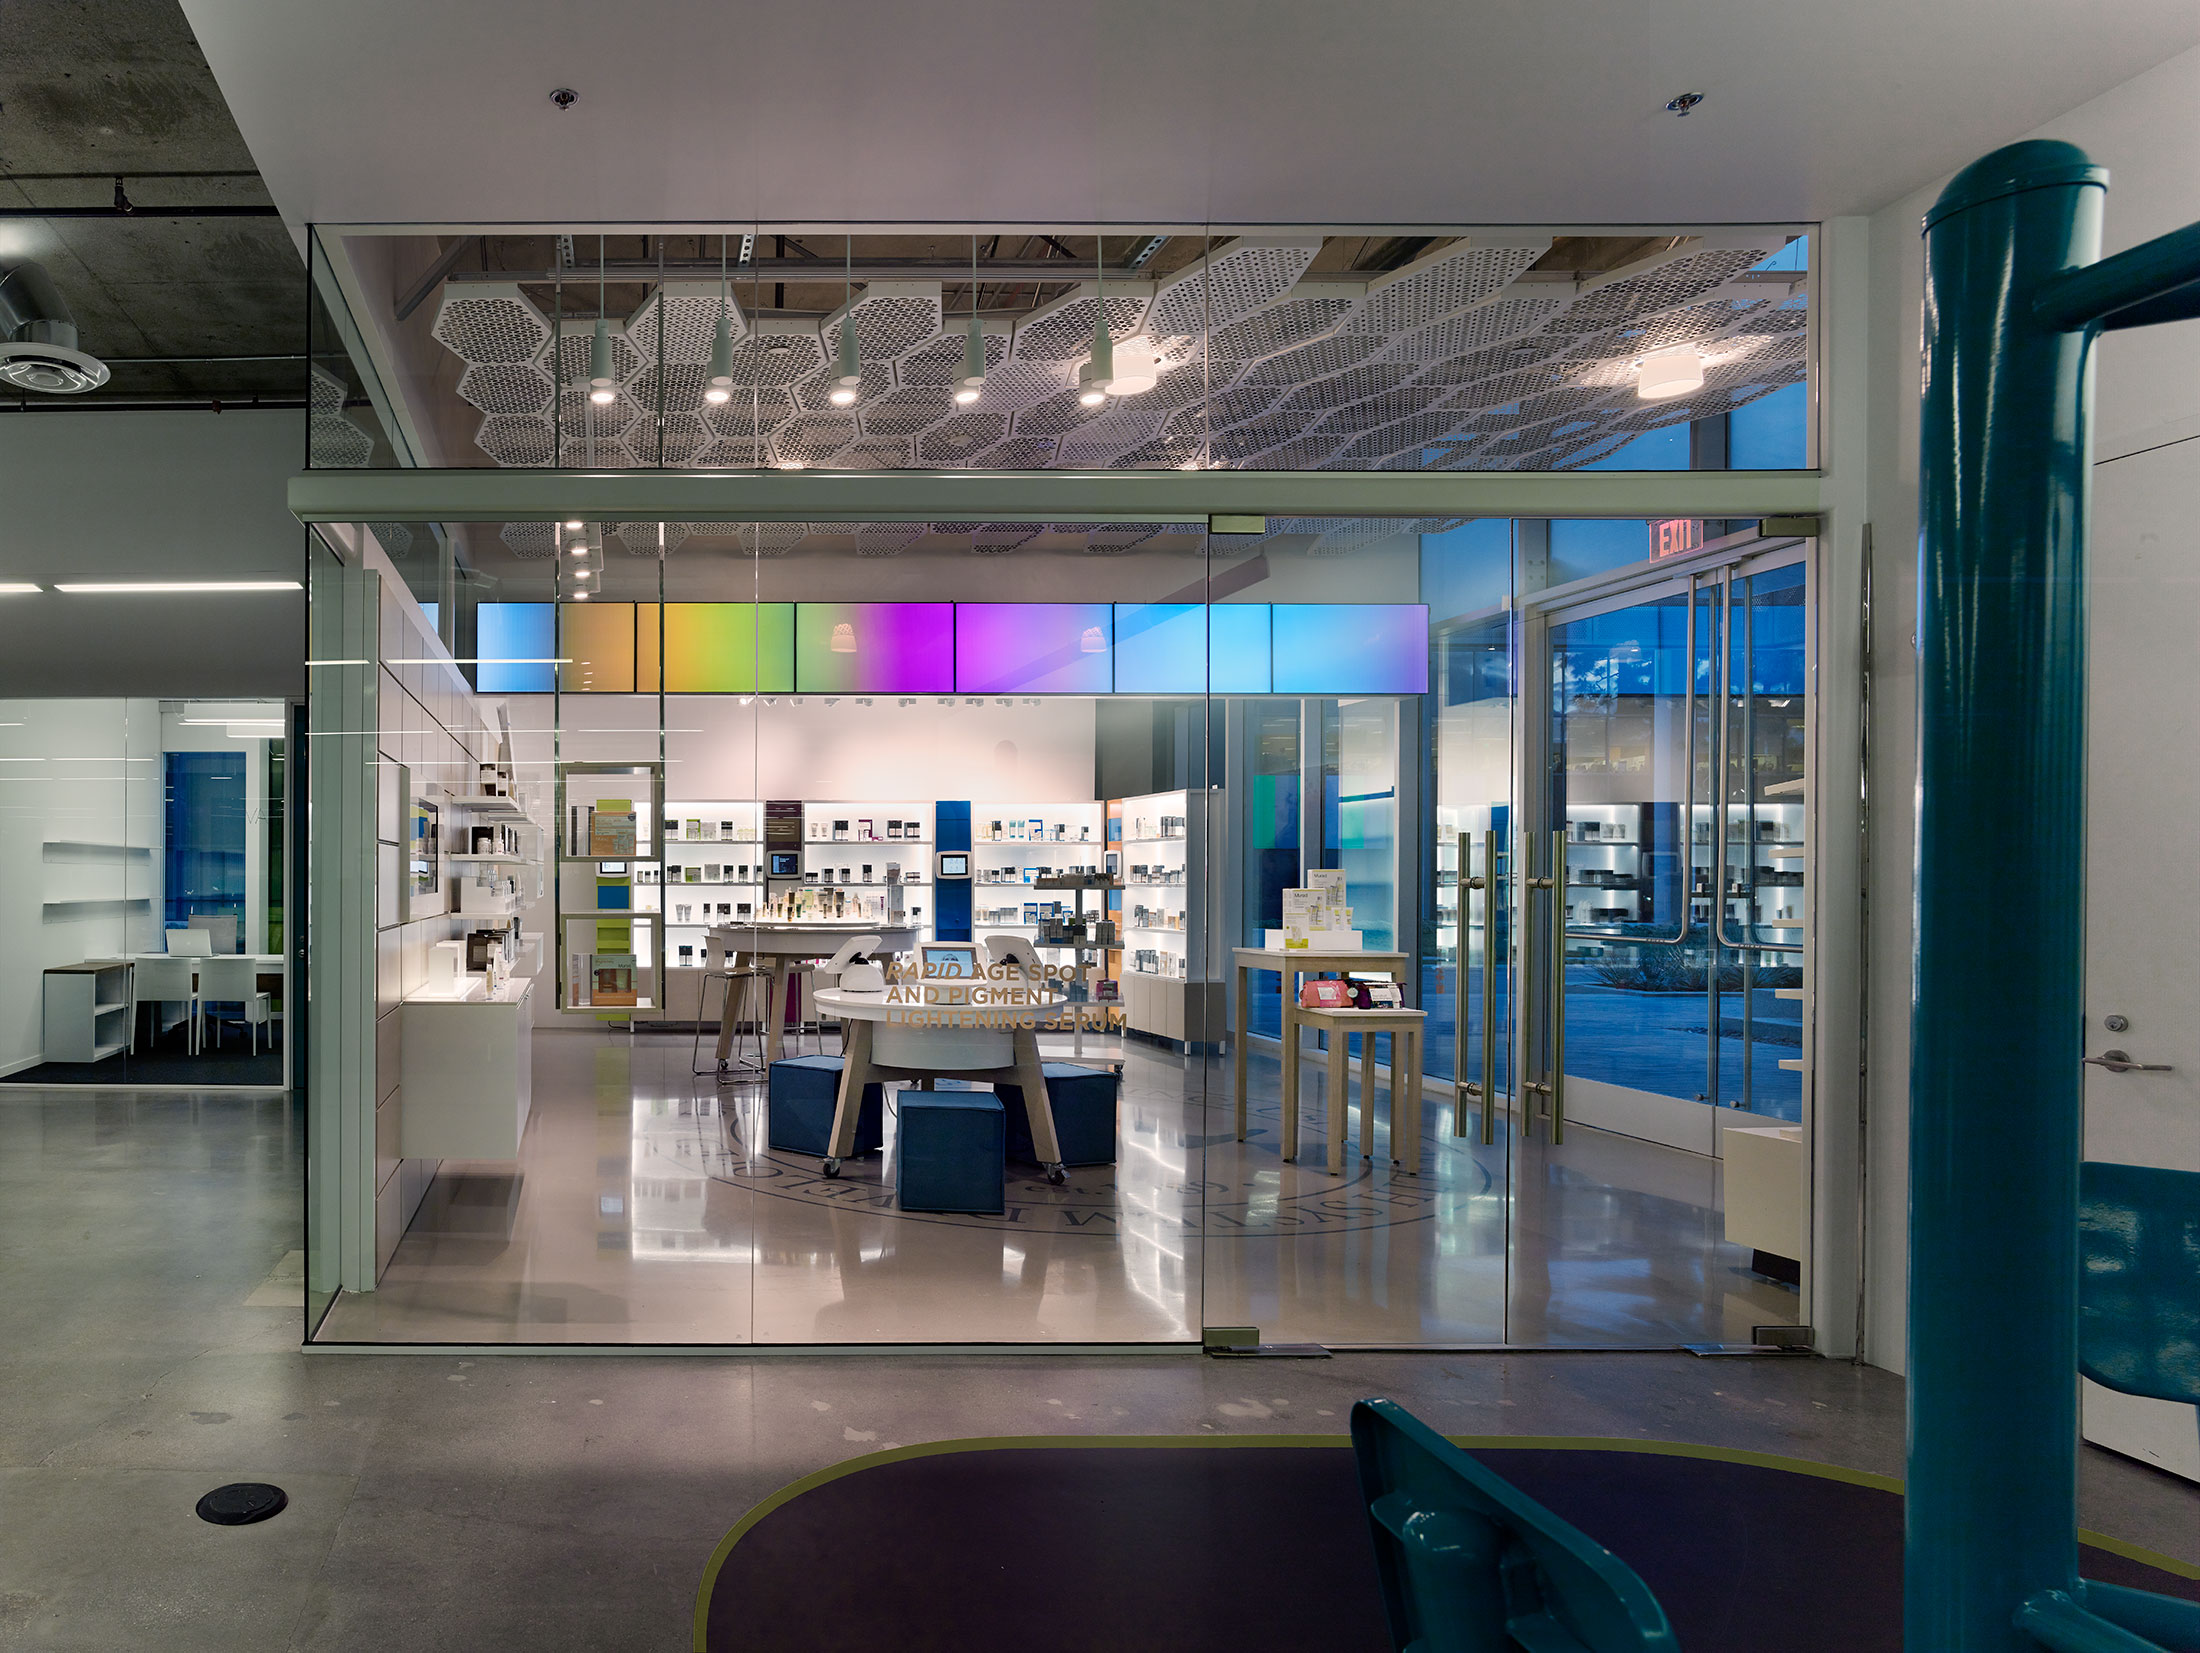 modern-architecture-commercial-interiors-workplace-office-branded-custom-fabrication-california-shubindonaldson-murad-headquarters-03